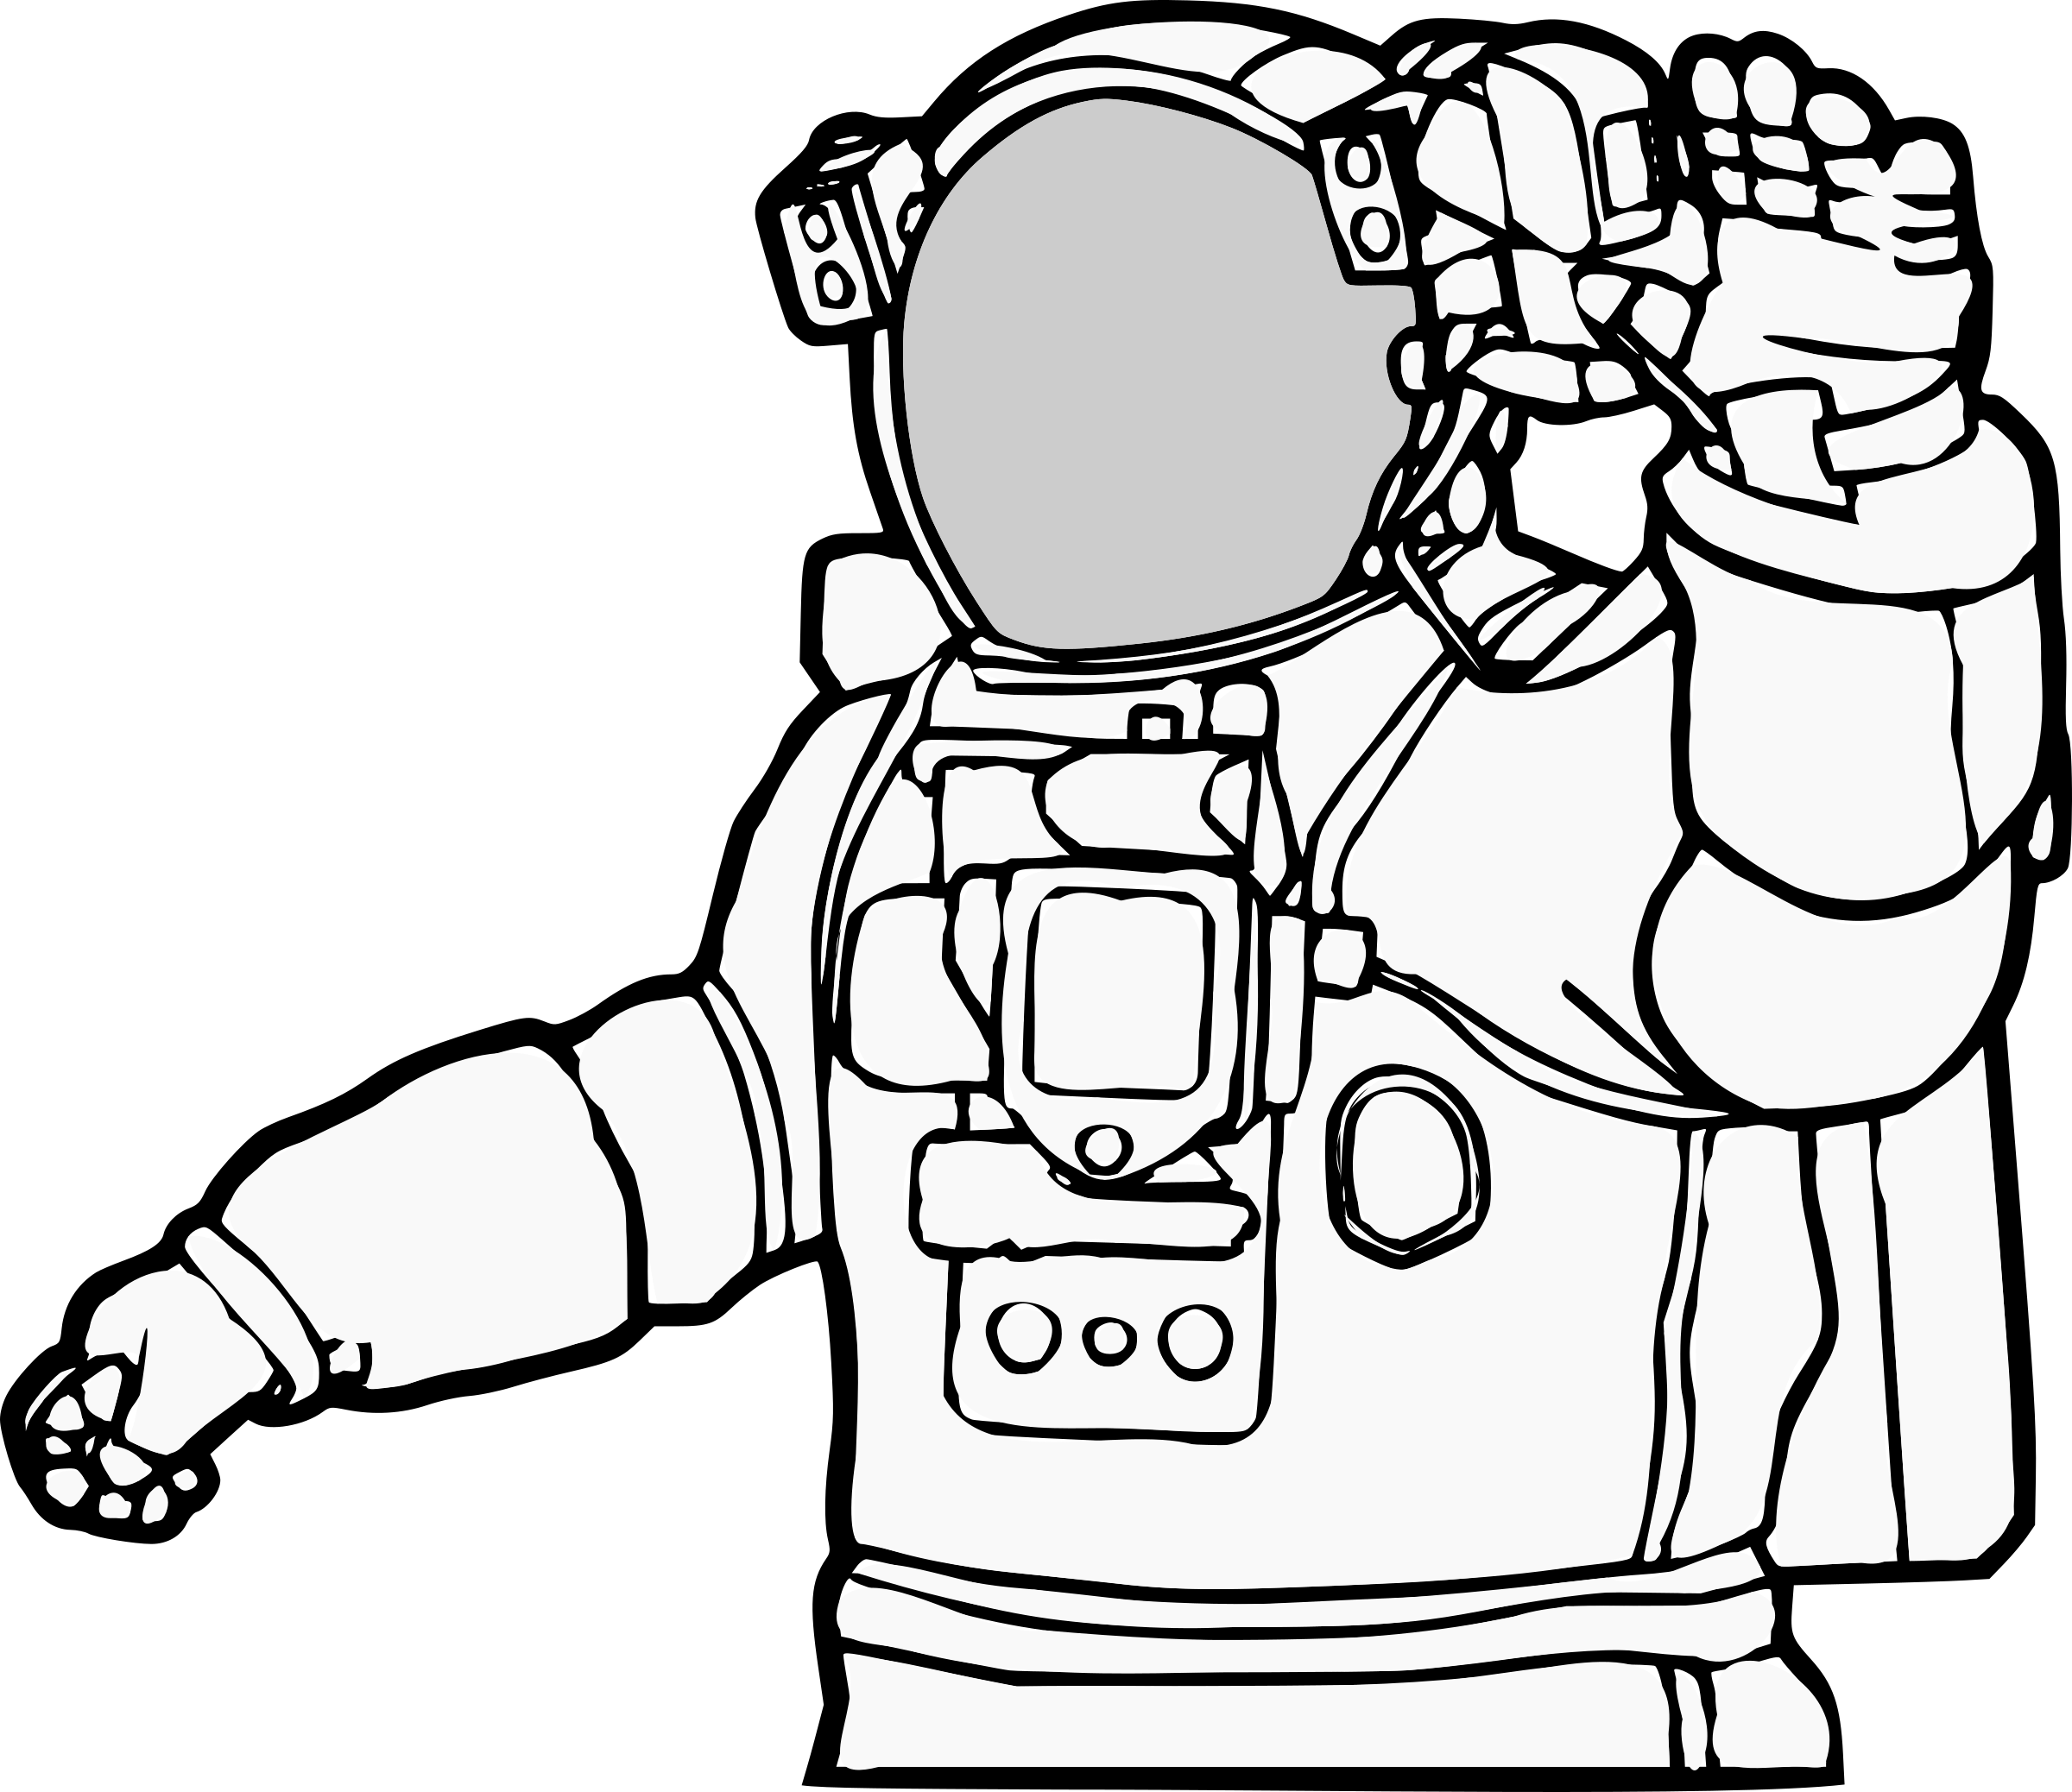 coloring picture of astronaut astronaut nasa coloring page wecoloringpagecom astronaut coloring of picture